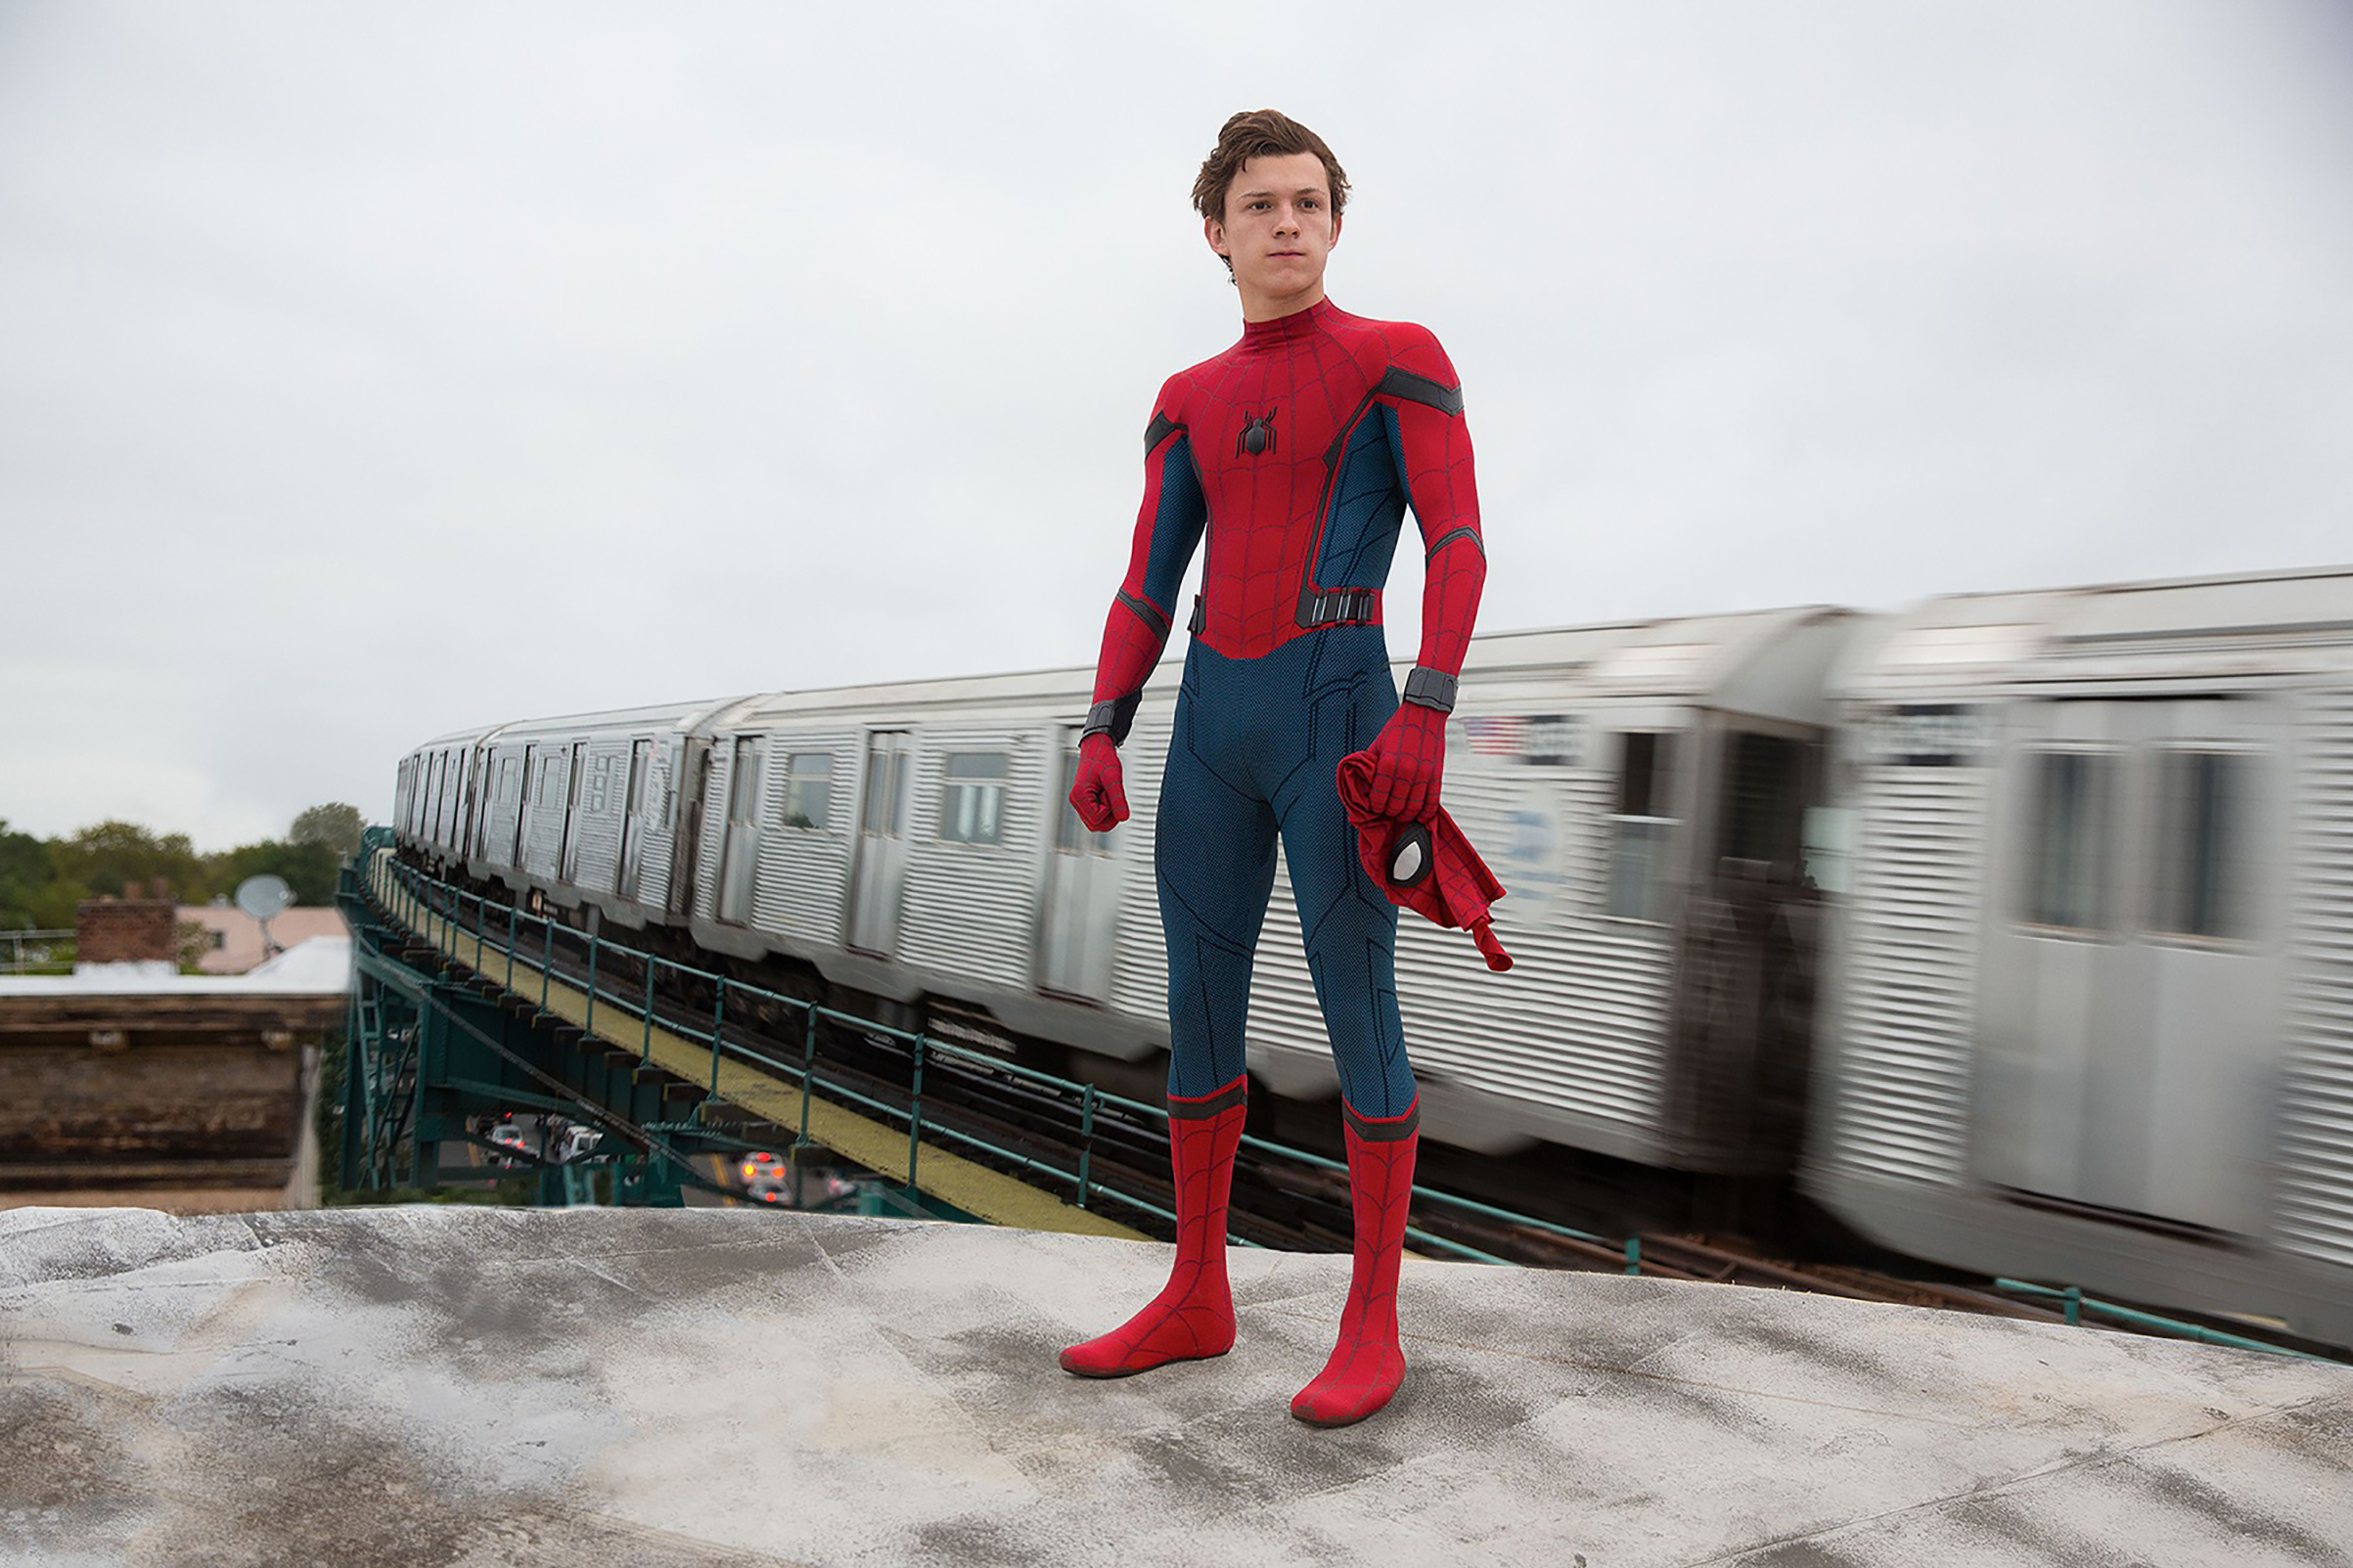 Spidey's onscreen alter-ego has always been Peter Parker. Sixteen years after the original film, Sony looks to modernize the character. From left: Tobey Maguire, Andrew Garfield and Tom Holland.